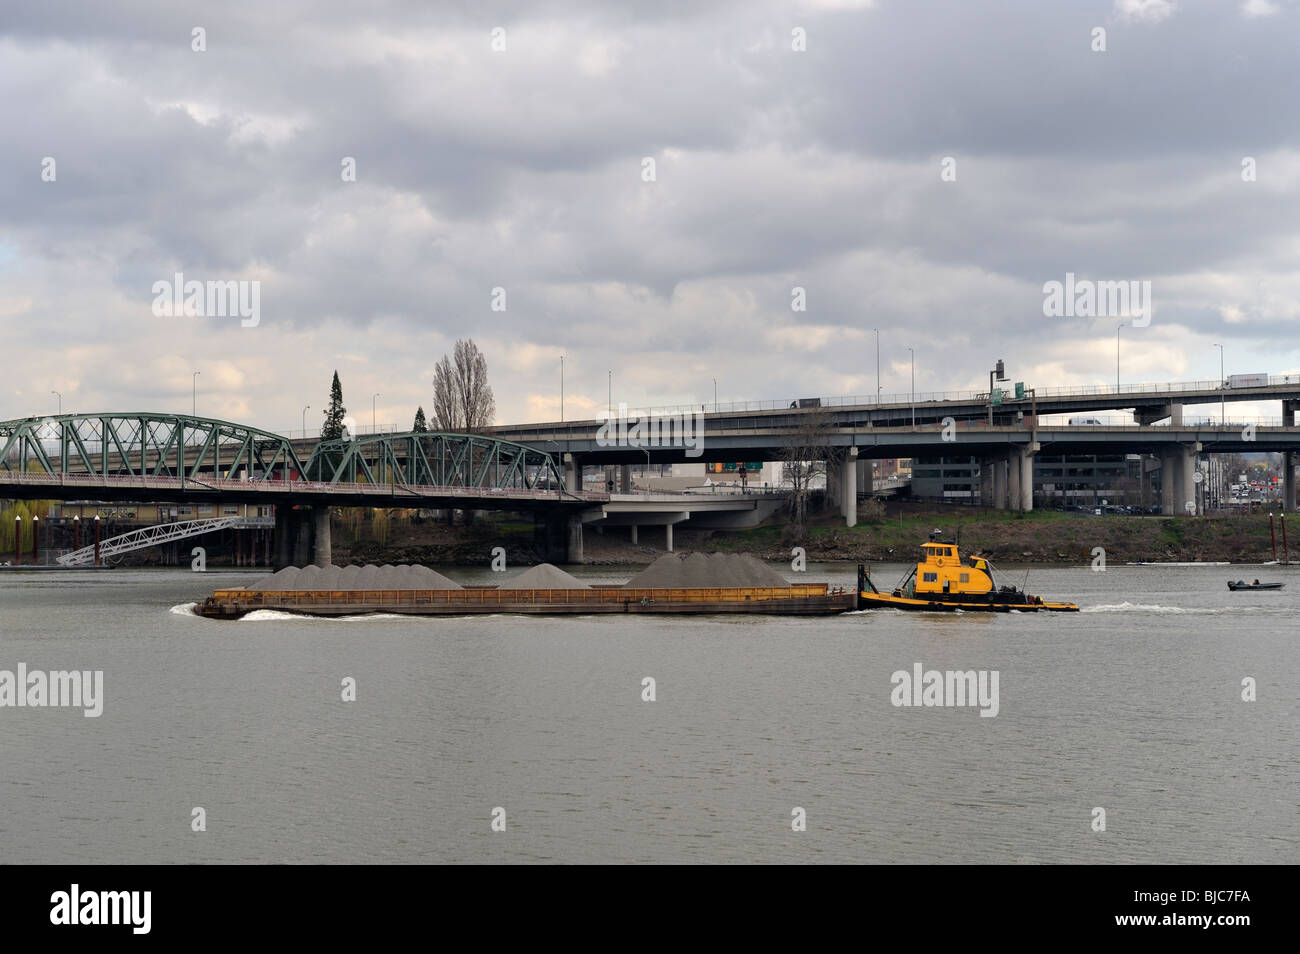 A river barge and tugboat on the Willamette River going under the Hawthorne Bridge, Portland, OR 100304_34896 - Stock Image